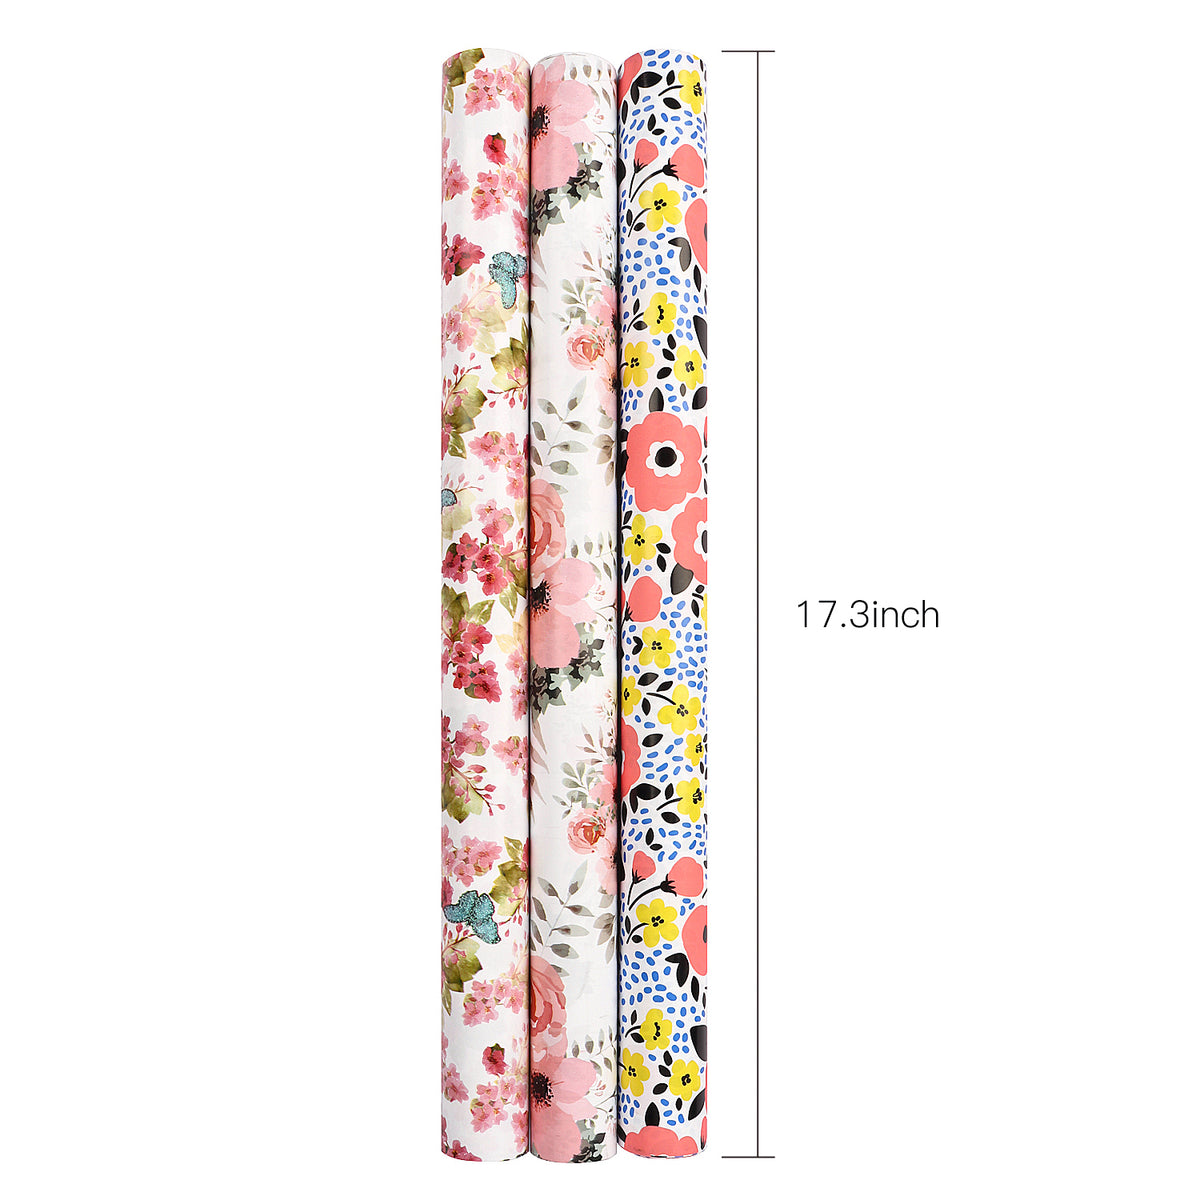 Wrapaholic-3 Different-Floral- and-Butterfly-Design-Wrapping-Paper -Roll-(14.4 sq. ft.TTL.)-5